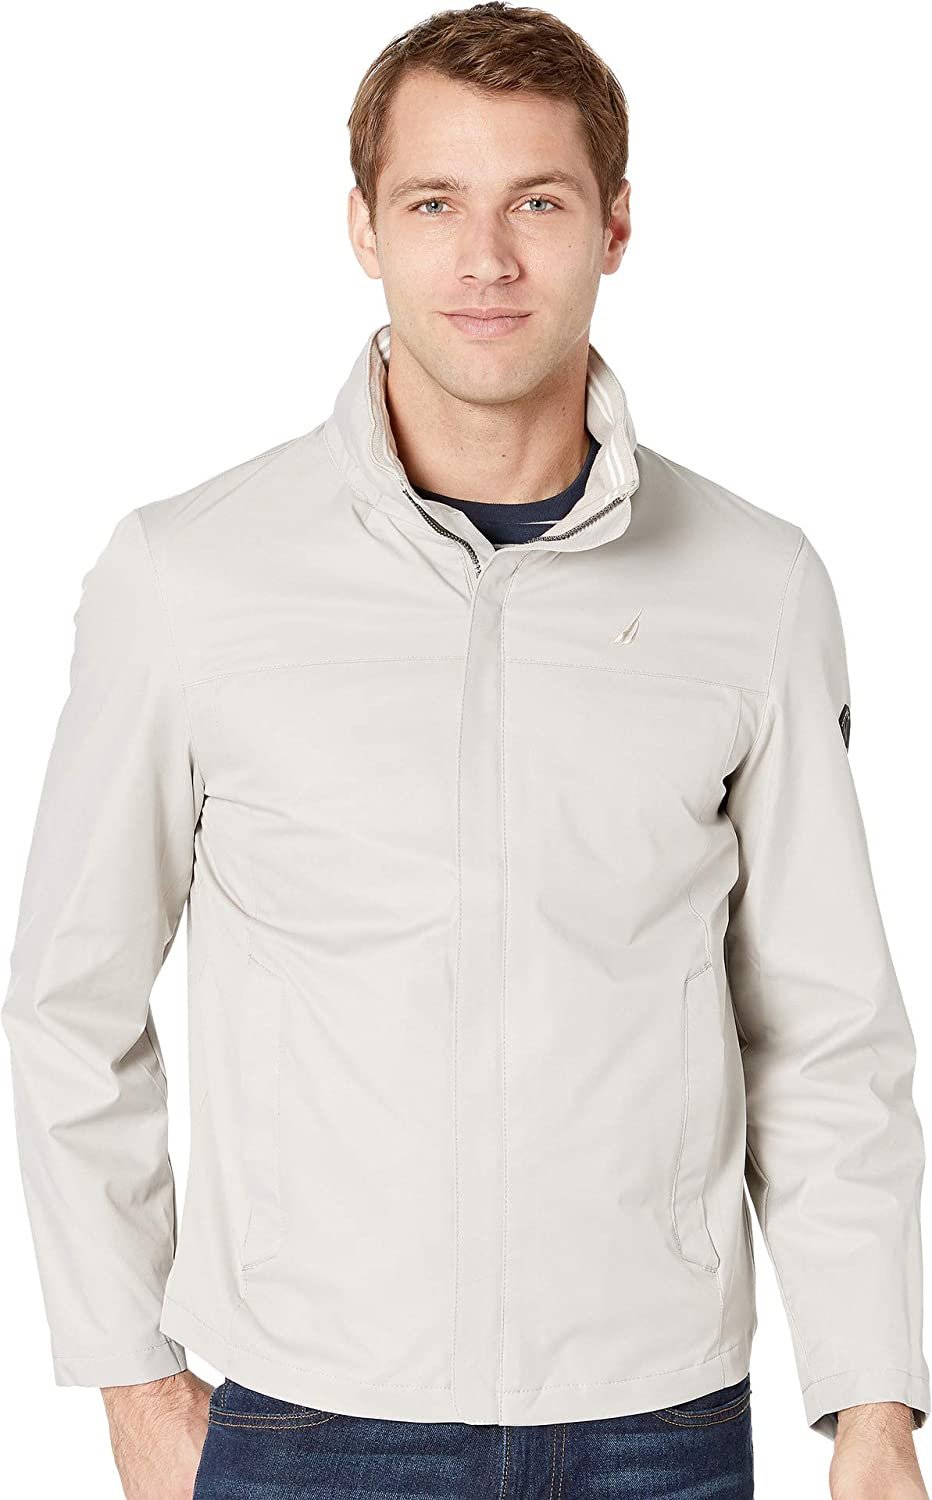 Year-end annual account Nautica Men's Bomber Jacket 2021 spring and summer new